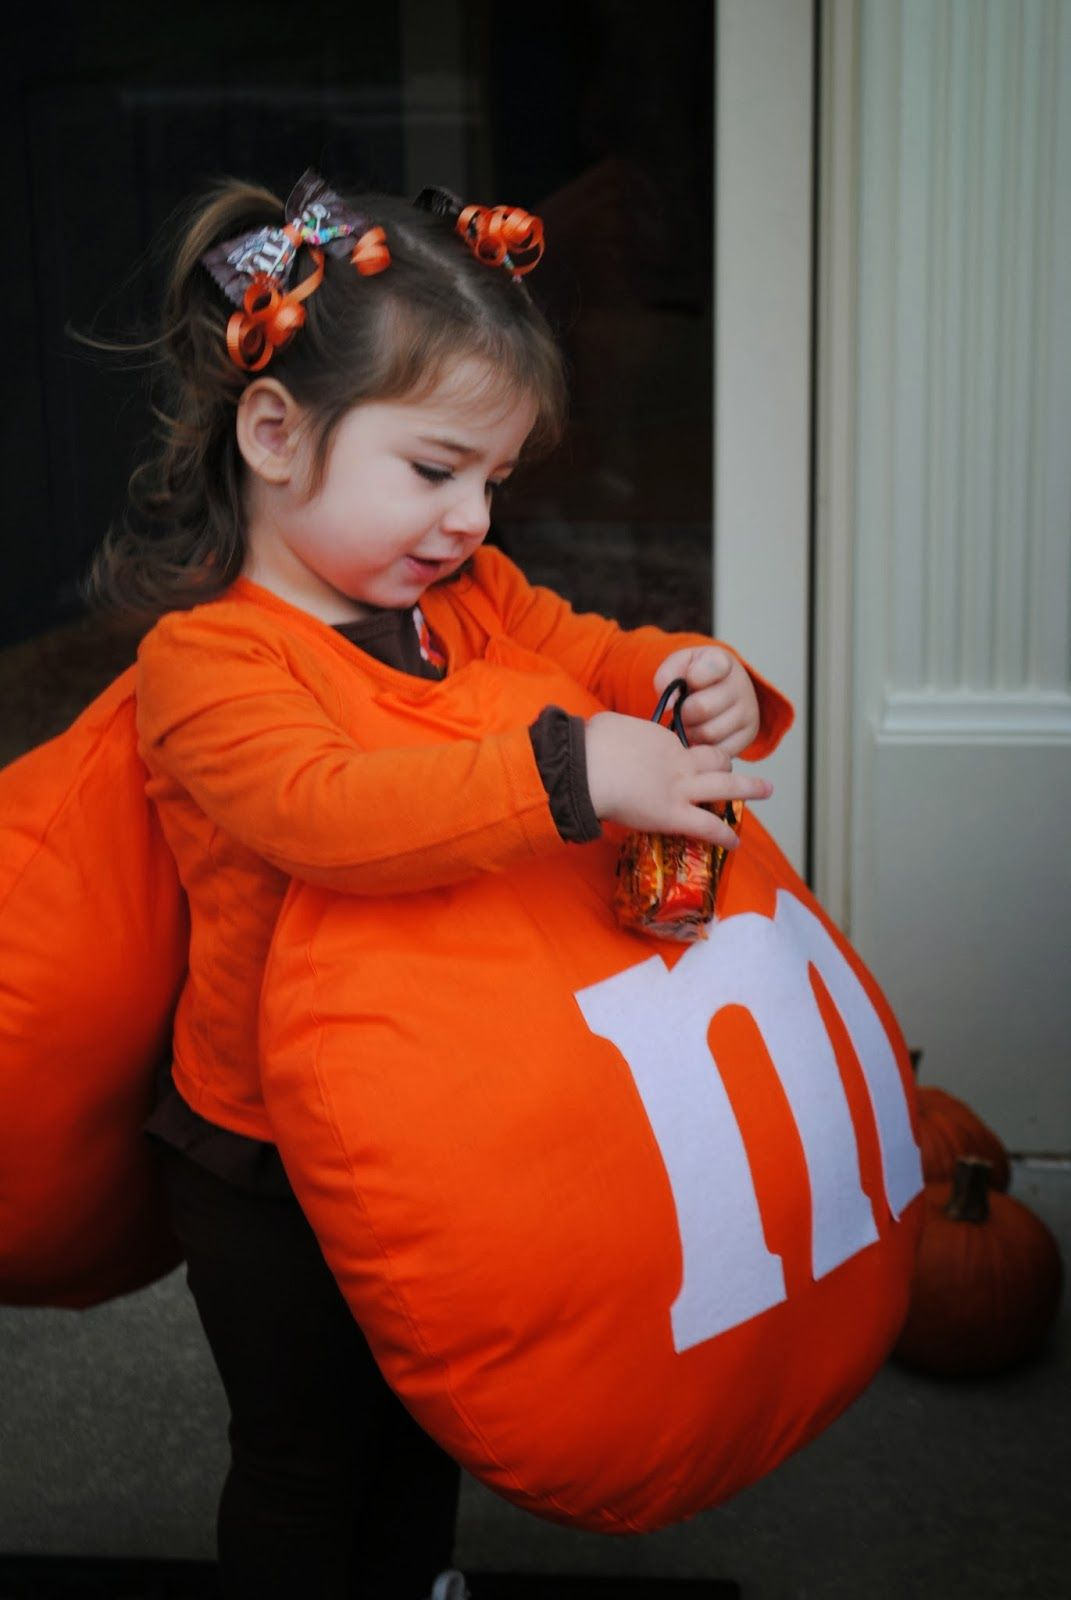 A few Halloweens back my thentwo year old daughter wanted